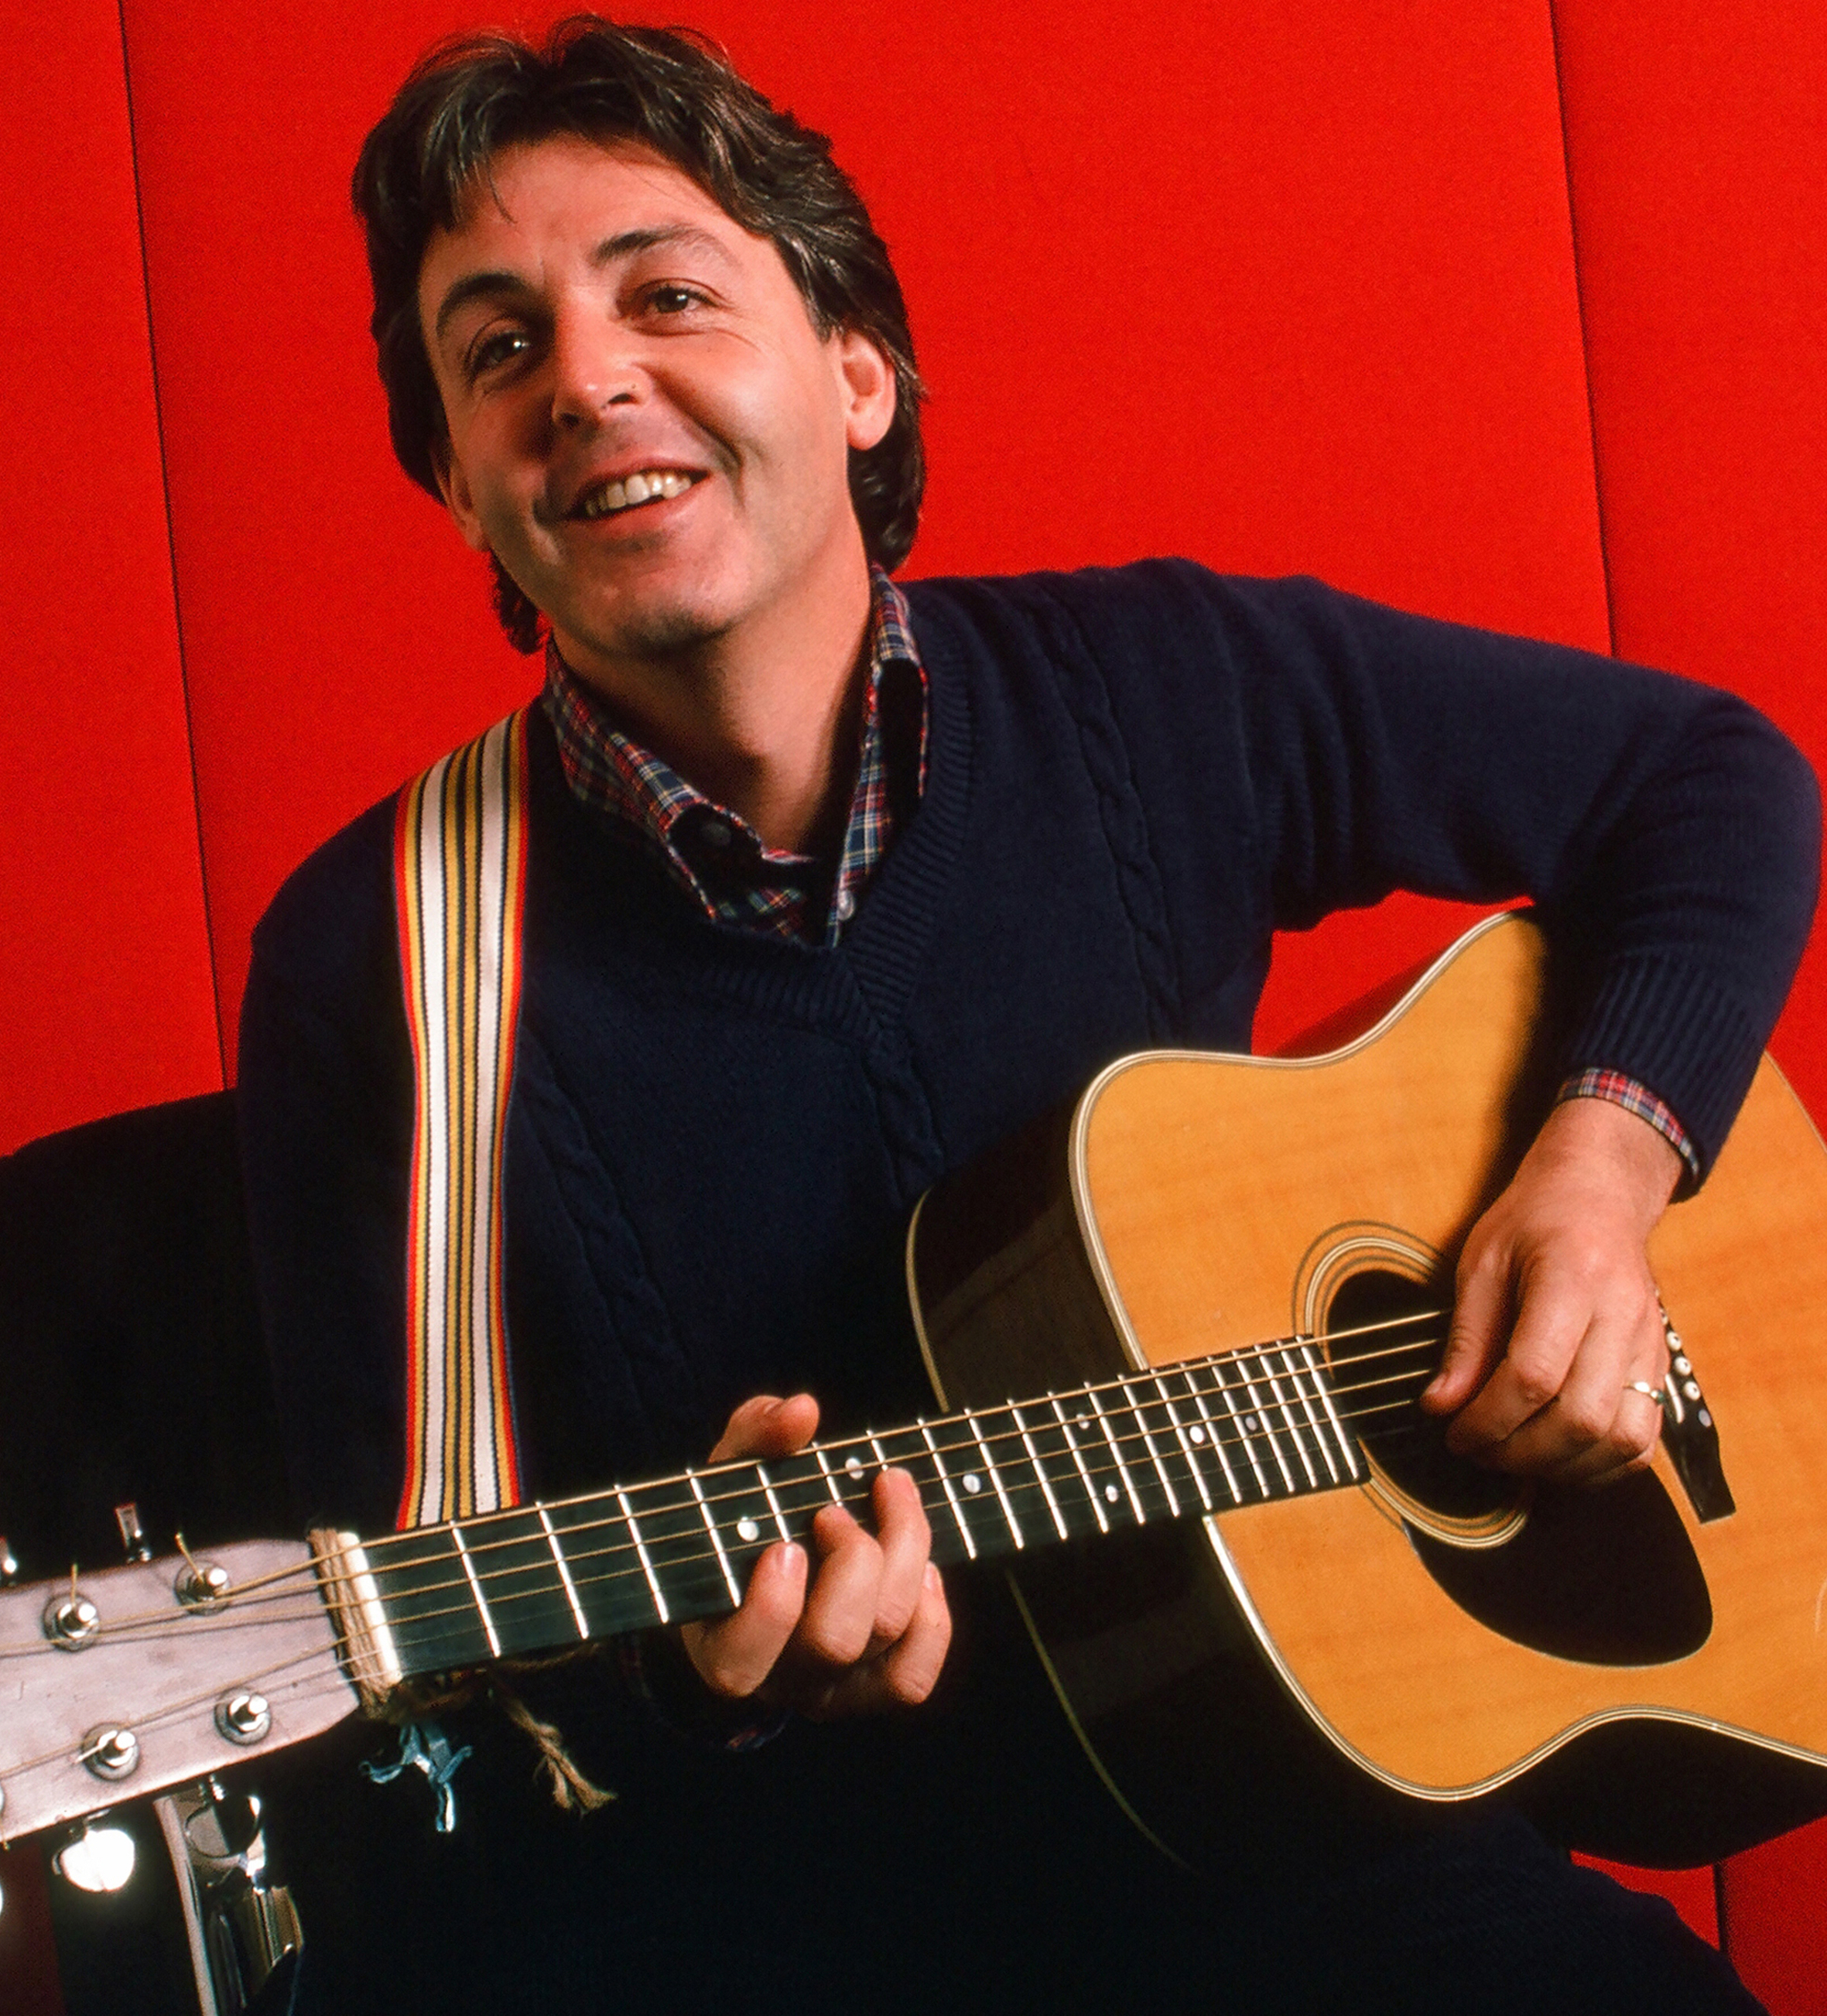 paul mccartney 40 best songs listen see rolling stone 05791b0b 22f9 4817 afef fd281578aae6 20 Things You Probably Didn't Know About Ferris Bueller's Day Off